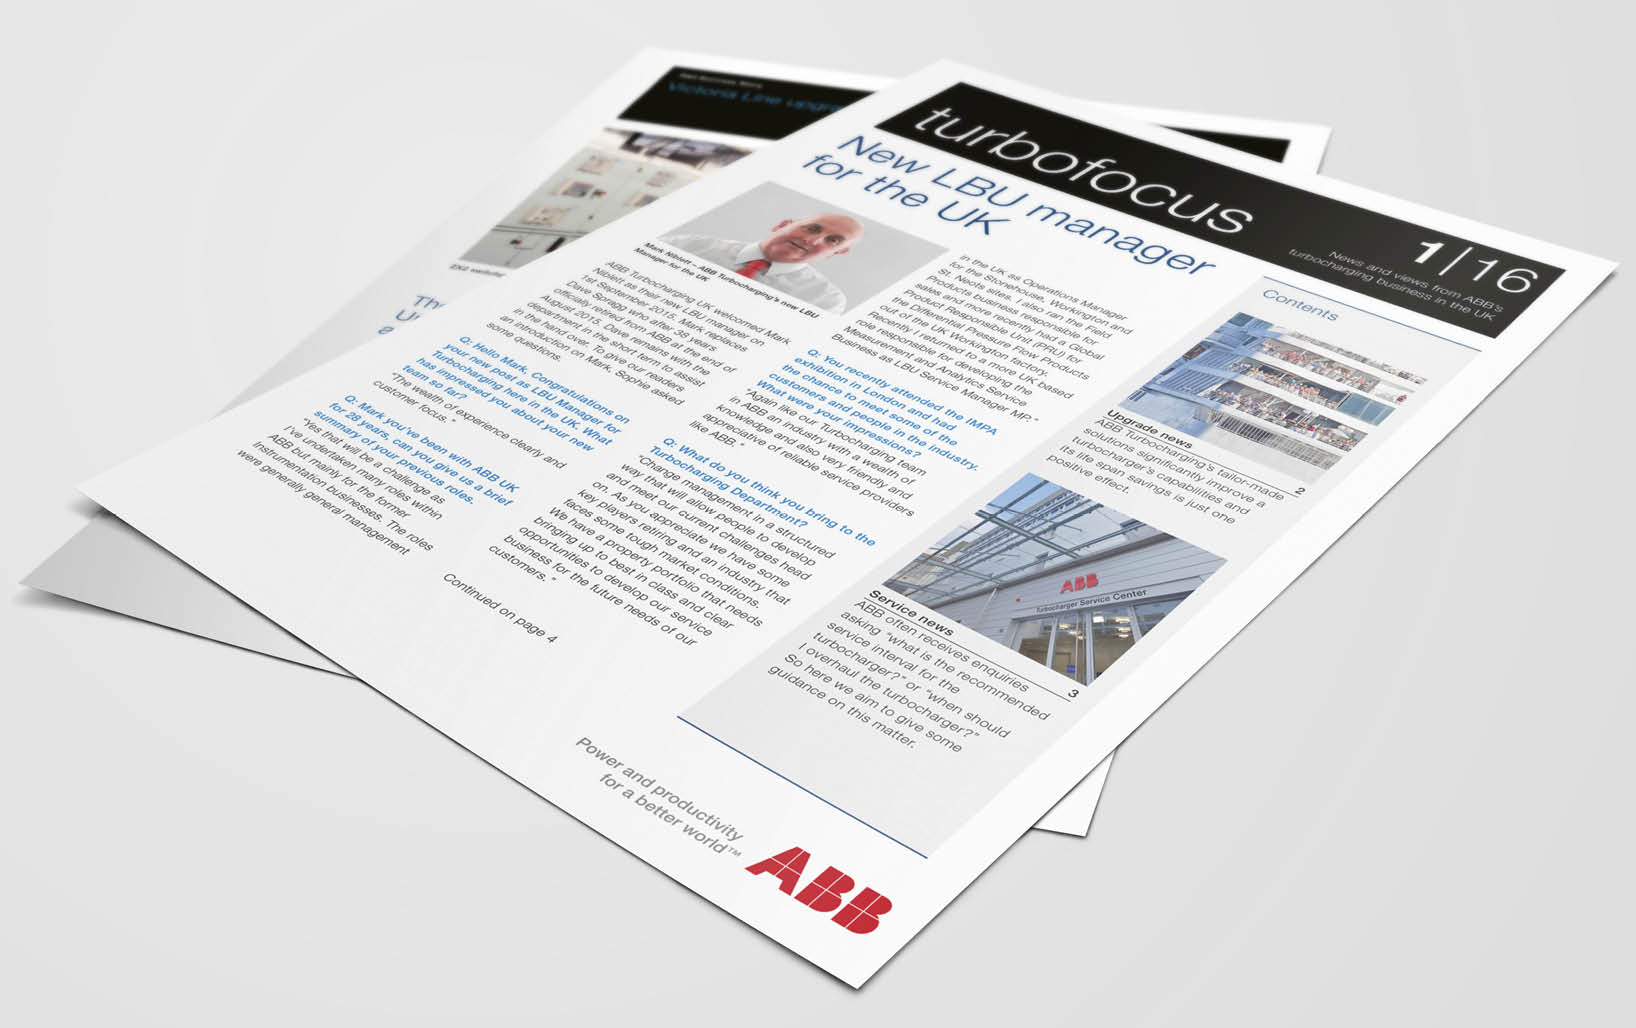 ABB Turbo Focus Customer Newsletter